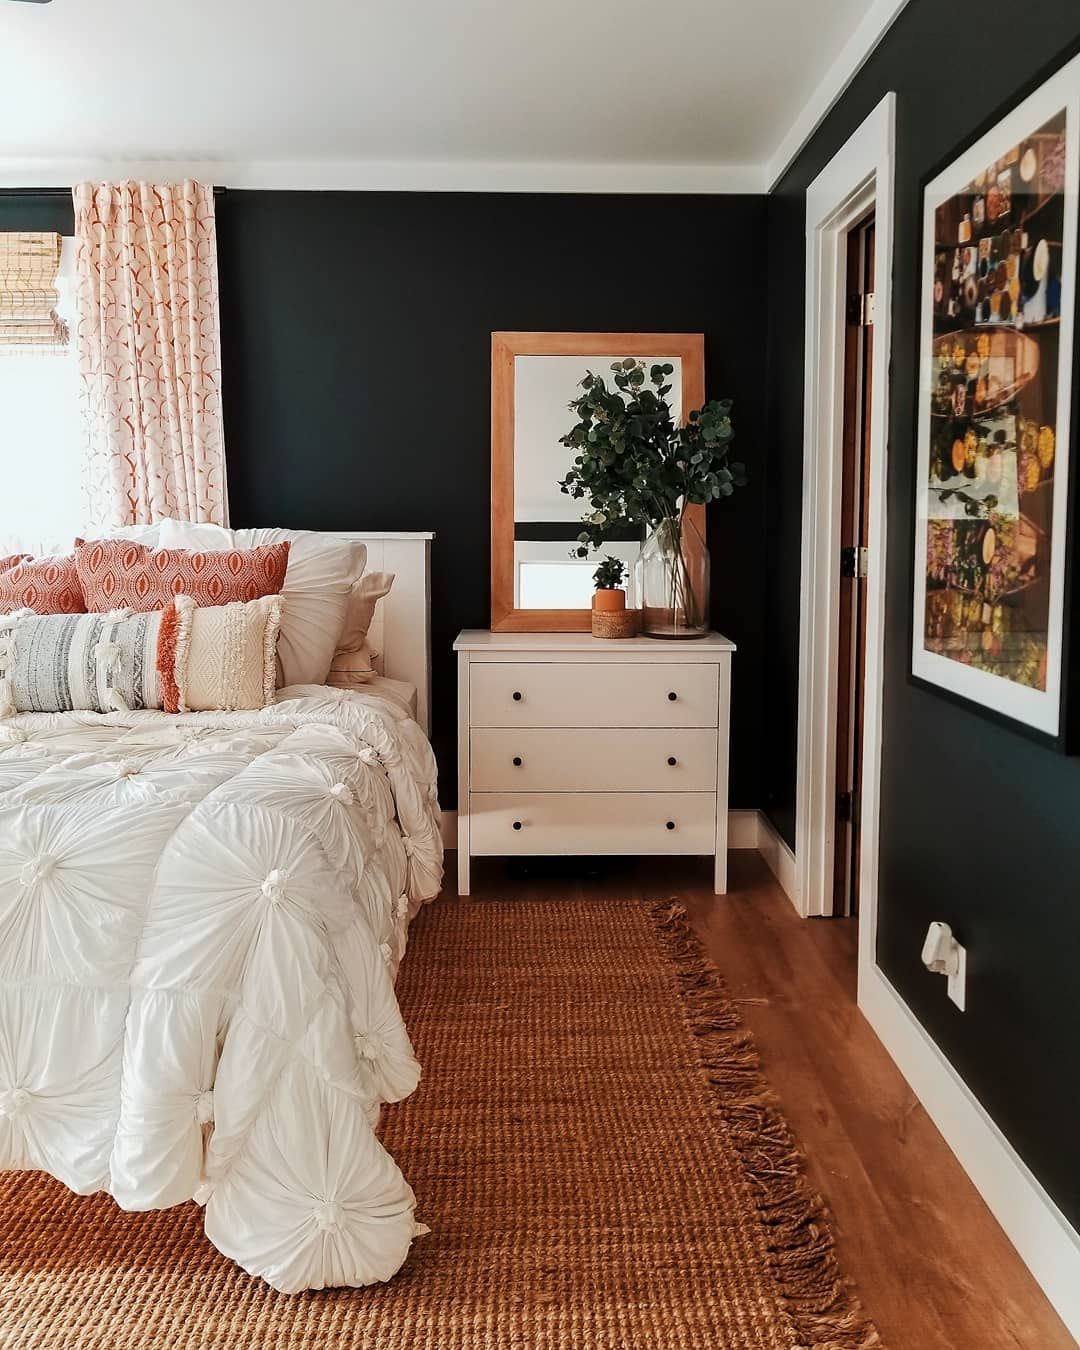 Black Master Bedroom Set Newborn Bedroom Sets Bedroom Ceiling Plan Pink Accent Wall Bedroom: Really Really Enjoy Our New Bedroom Layout But Man I Miss